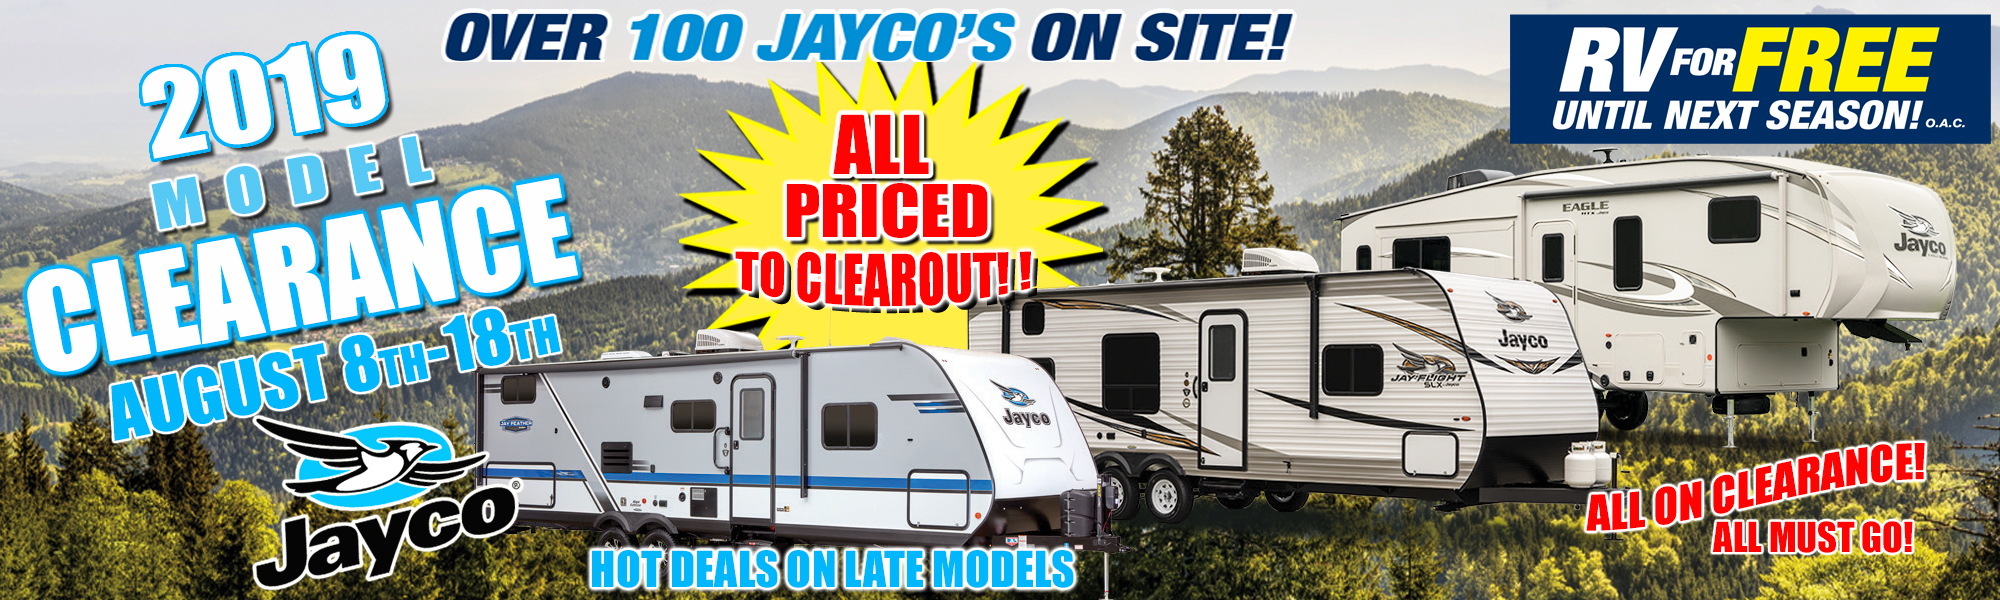 Len's Rv - Len's Rv Is The Premier Exclusive Jayco Rv Sales And